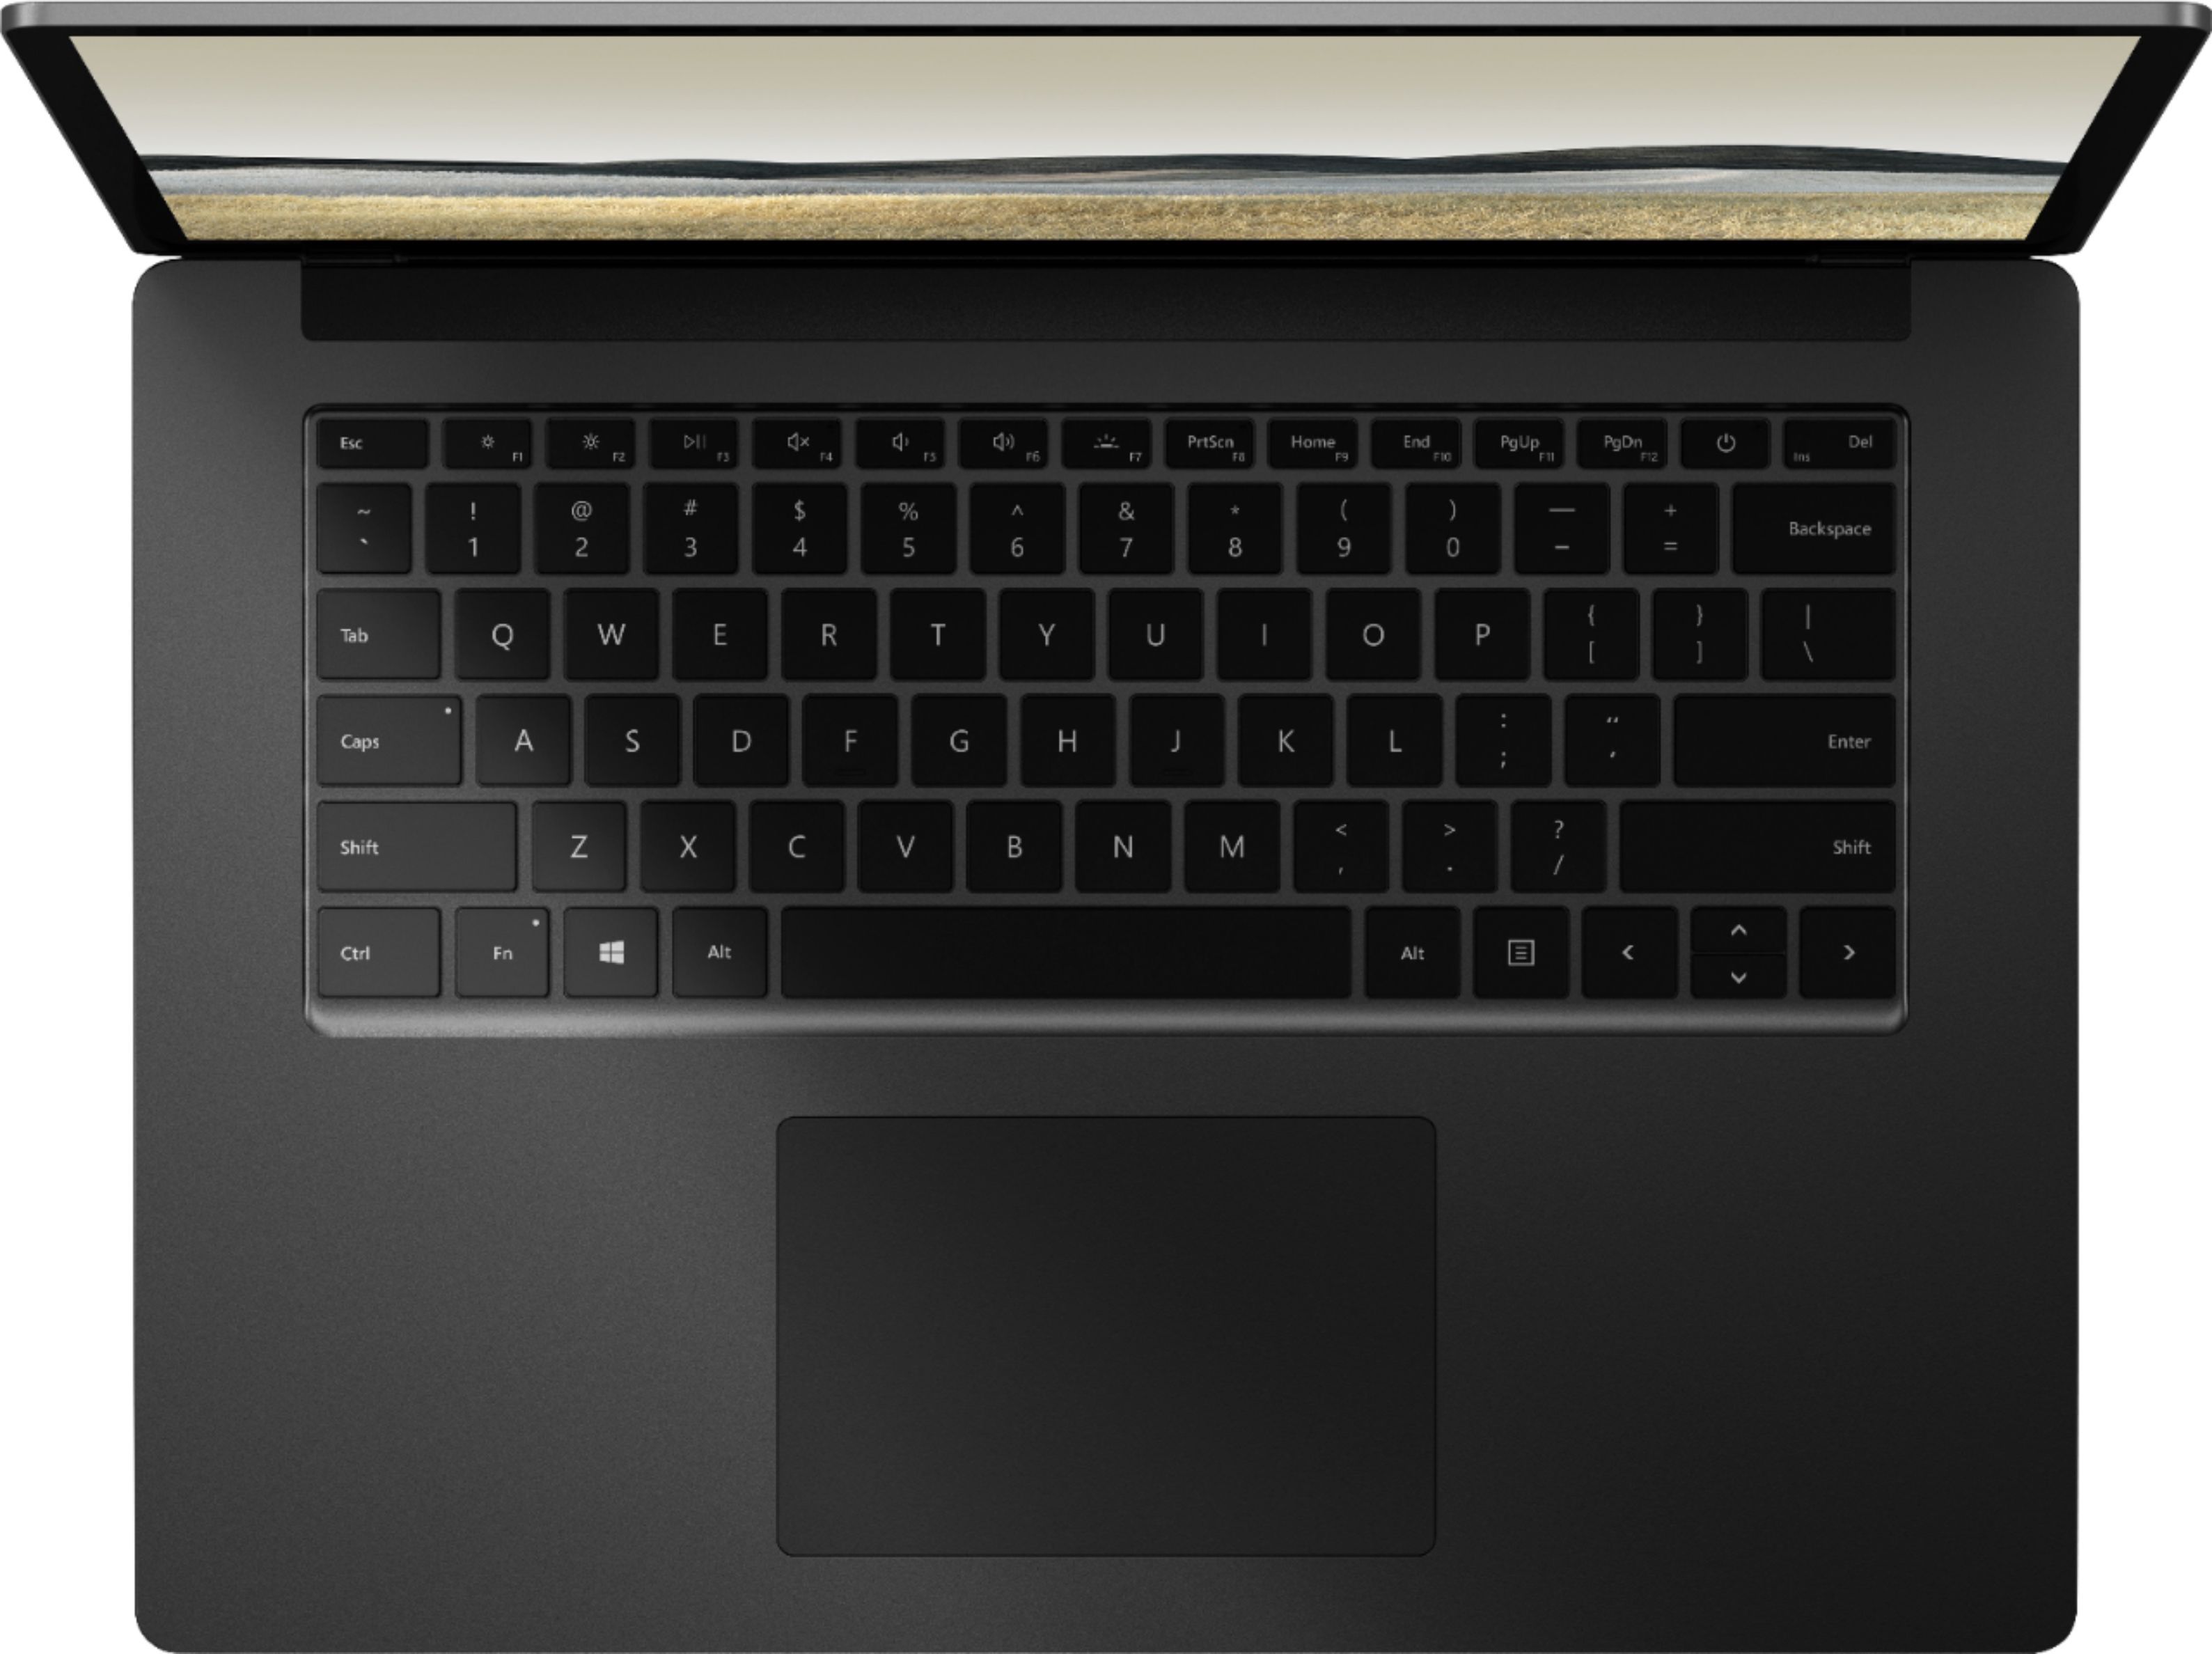 """Alt View Zoom 12. Microsoft - Surface Laptop 3 - 15"""" Touch-Screen - AMD Ryzen™ 5 Surface Edition - 16GB Memory - 256GB SSD (Latest Model) - Matte Black."""